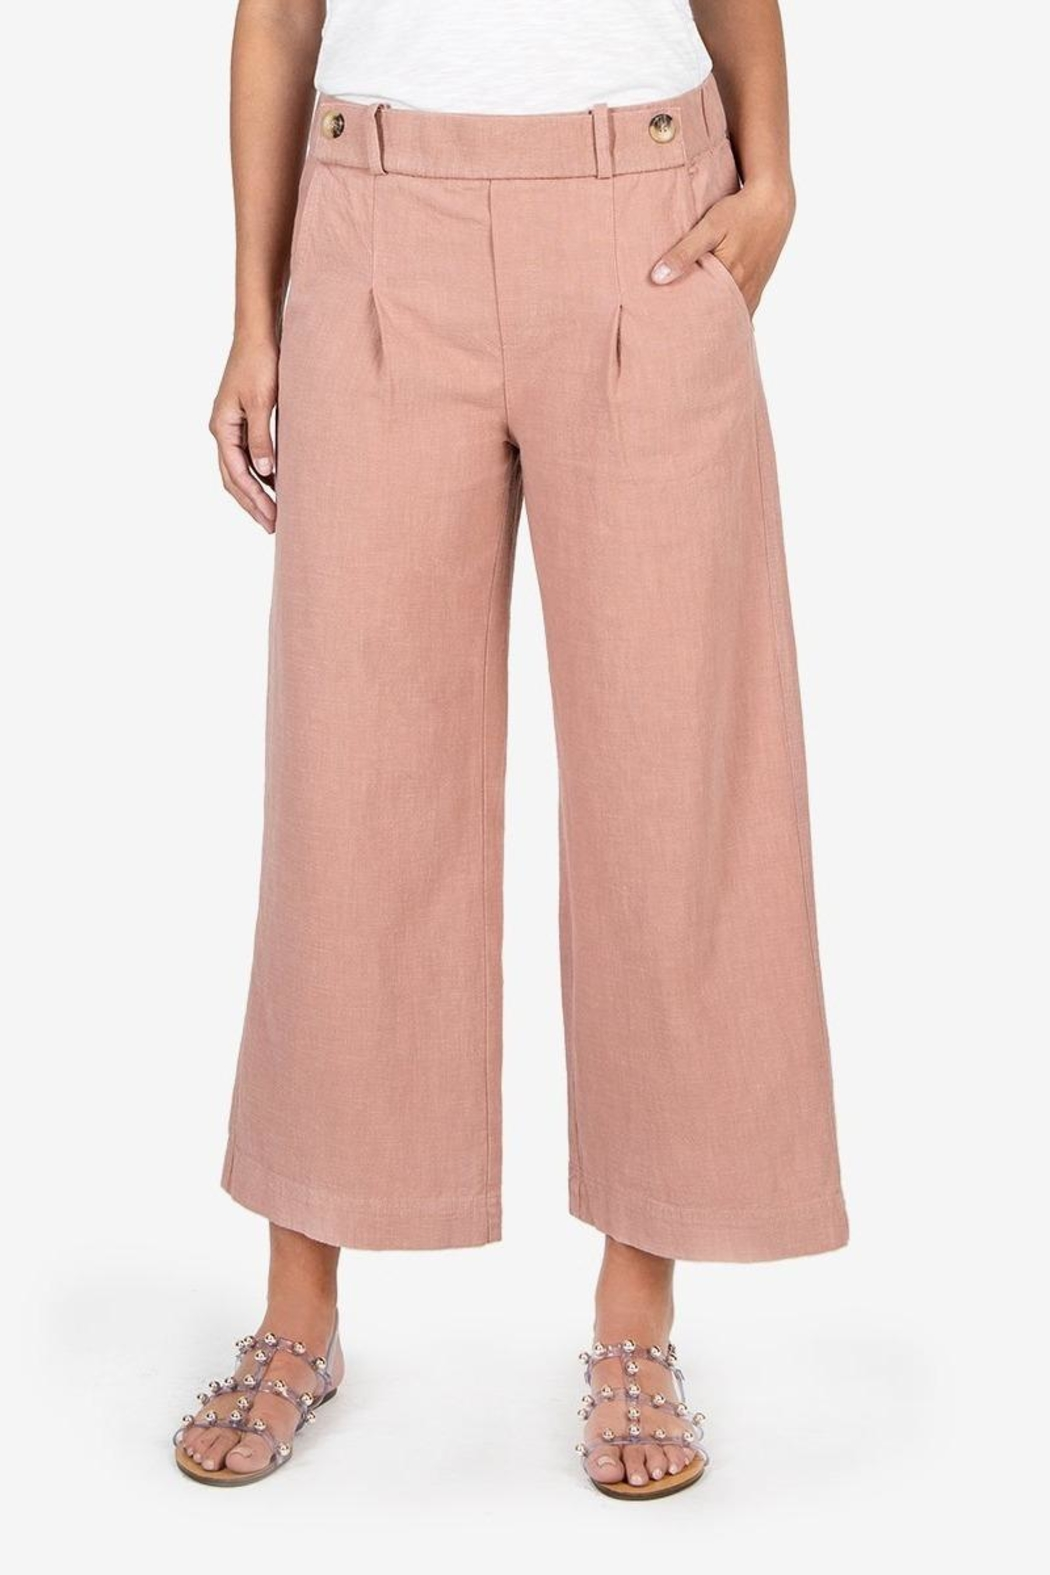 Kut from the Kloth Raine Culotte Pant - Main Image